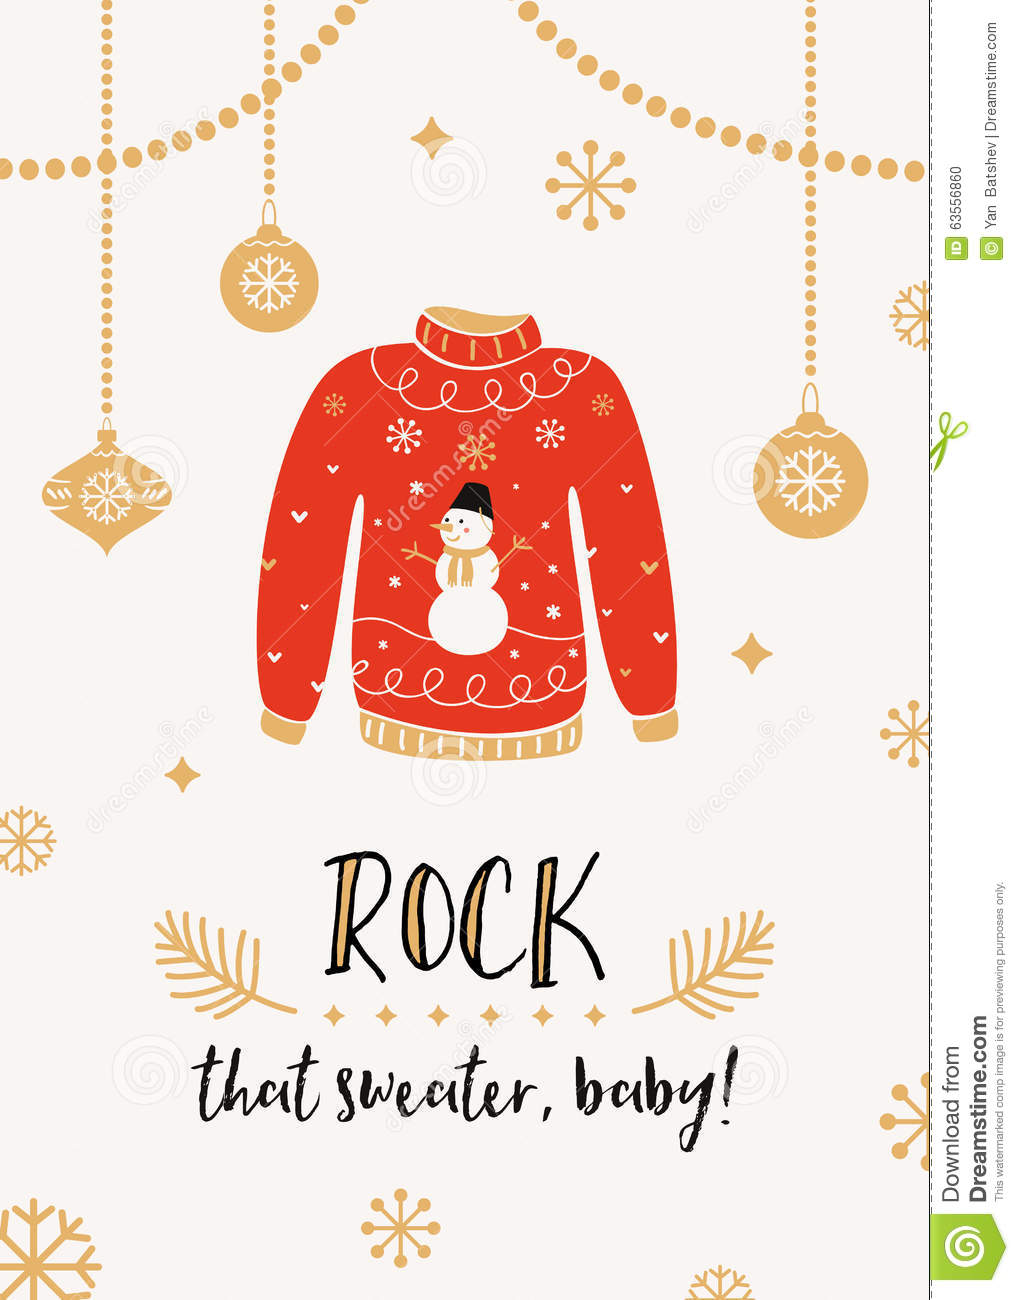 ugly sweater christmas card template cashmere sweater england. Black Bedroom Furniture Sets. Home Design Ideas